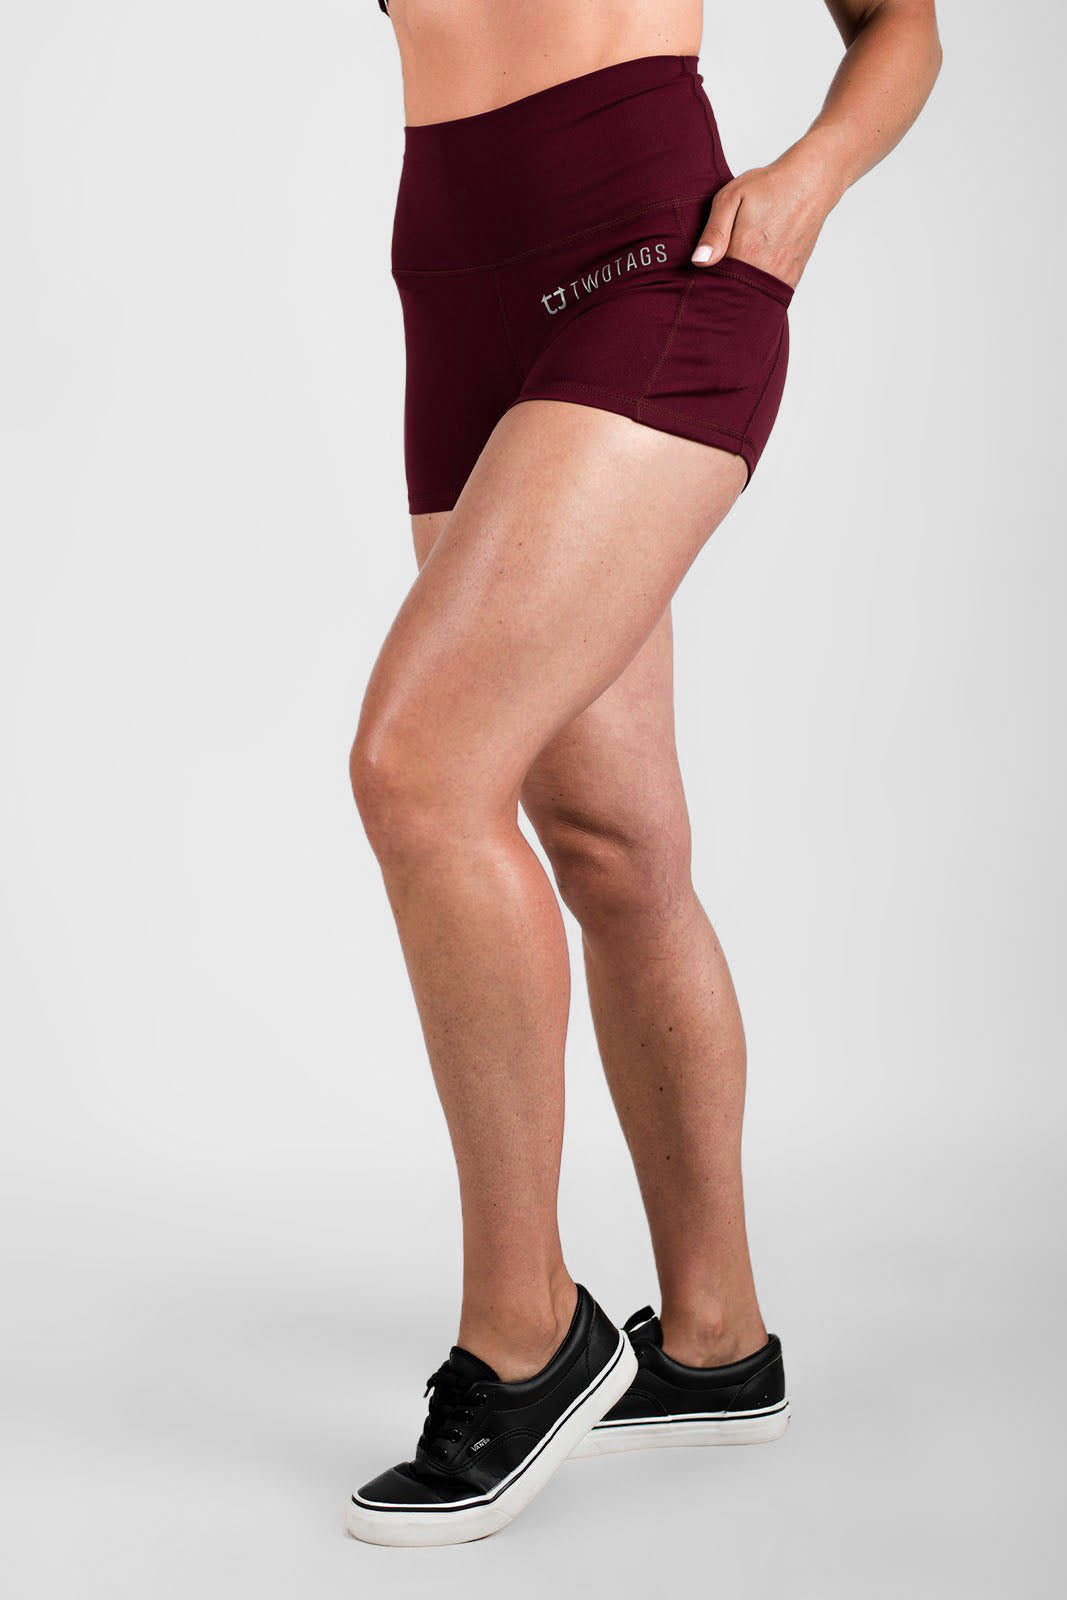 Twotags Ladies Highwaisted Scrunch Shorts – Burgundy